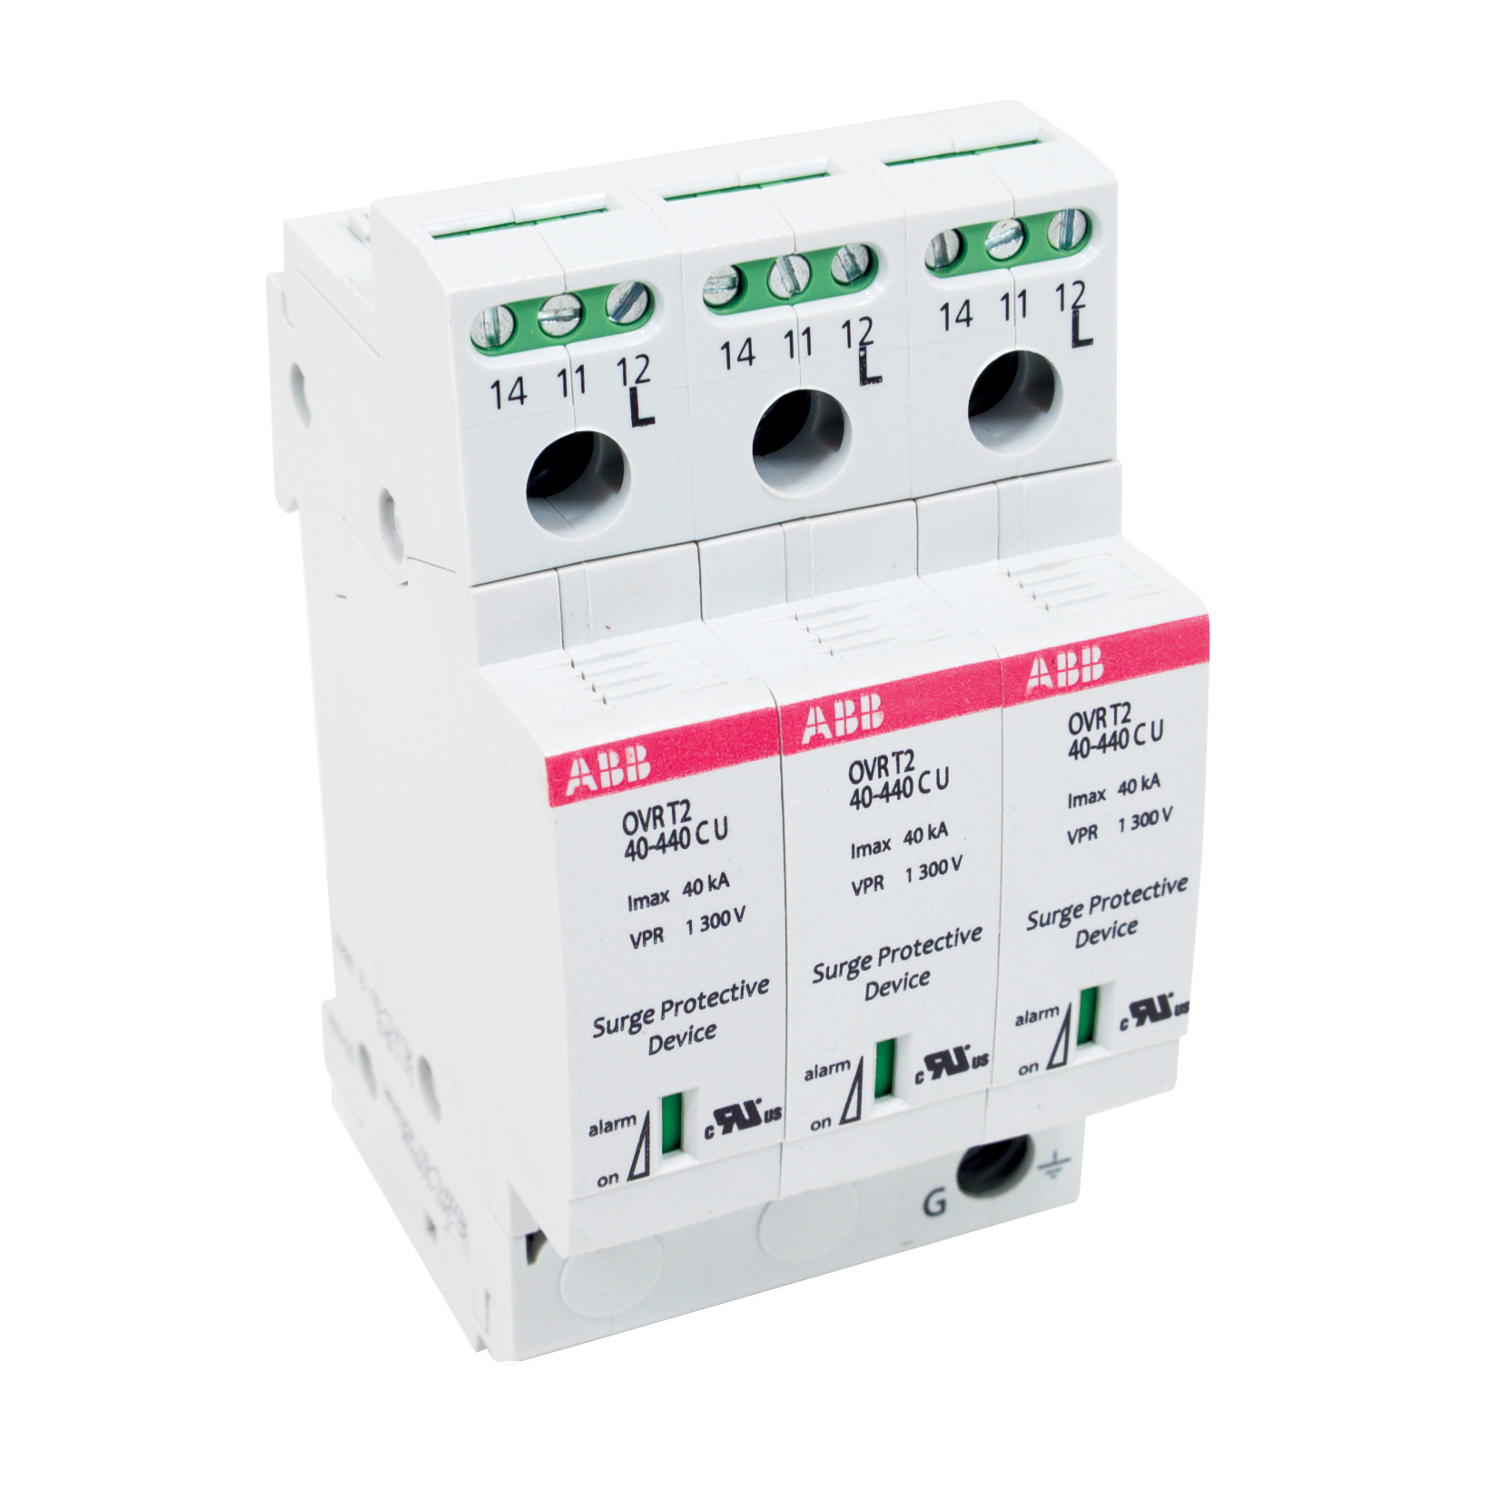 Abb Molded Case Circuit Breakers Standard Electric Supply Current Monitoring Relay Three Pole Ovr Din Rail Surge Protection Device With A Capacity Of 40 Ka And Control Ovrt23l40440ptsu